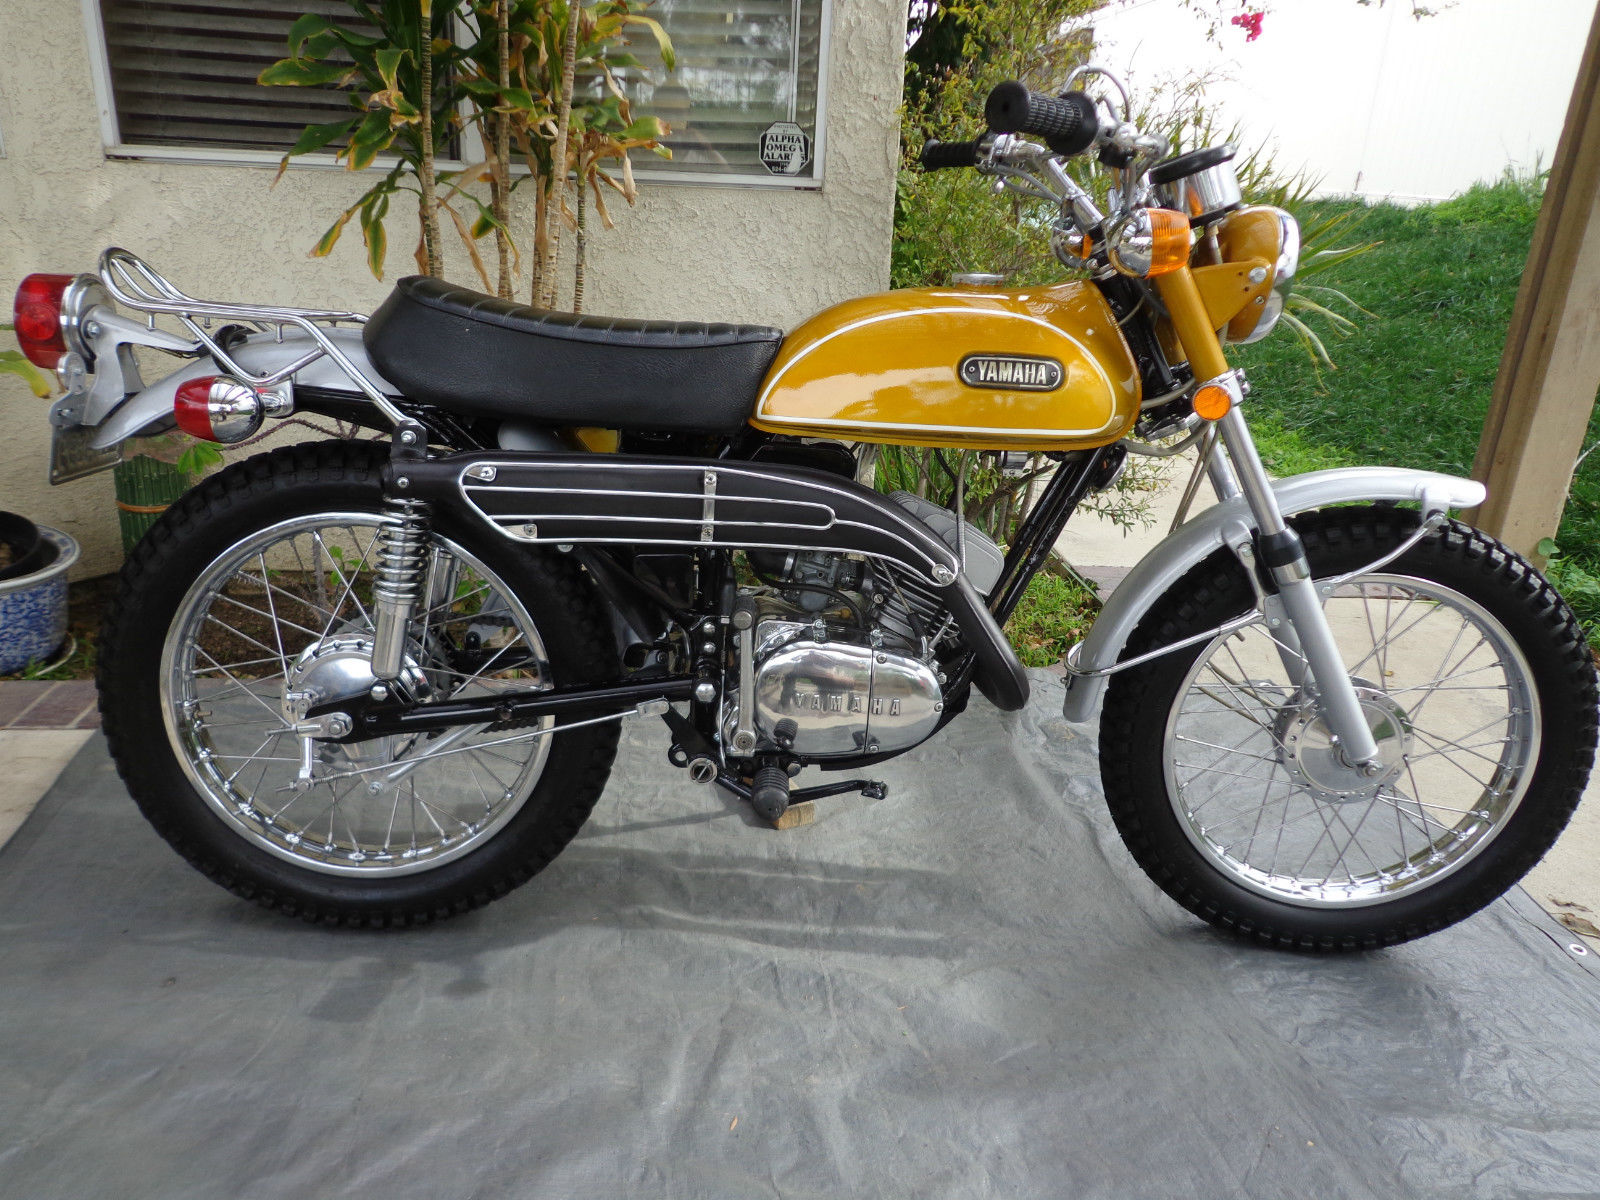 yamahct1 1975 1?resize=640%2C480 1969 yamaha enduro 175 hobbiesxstyle 1971 yamaha ct1 175 wiring diagram at crackthecode.co